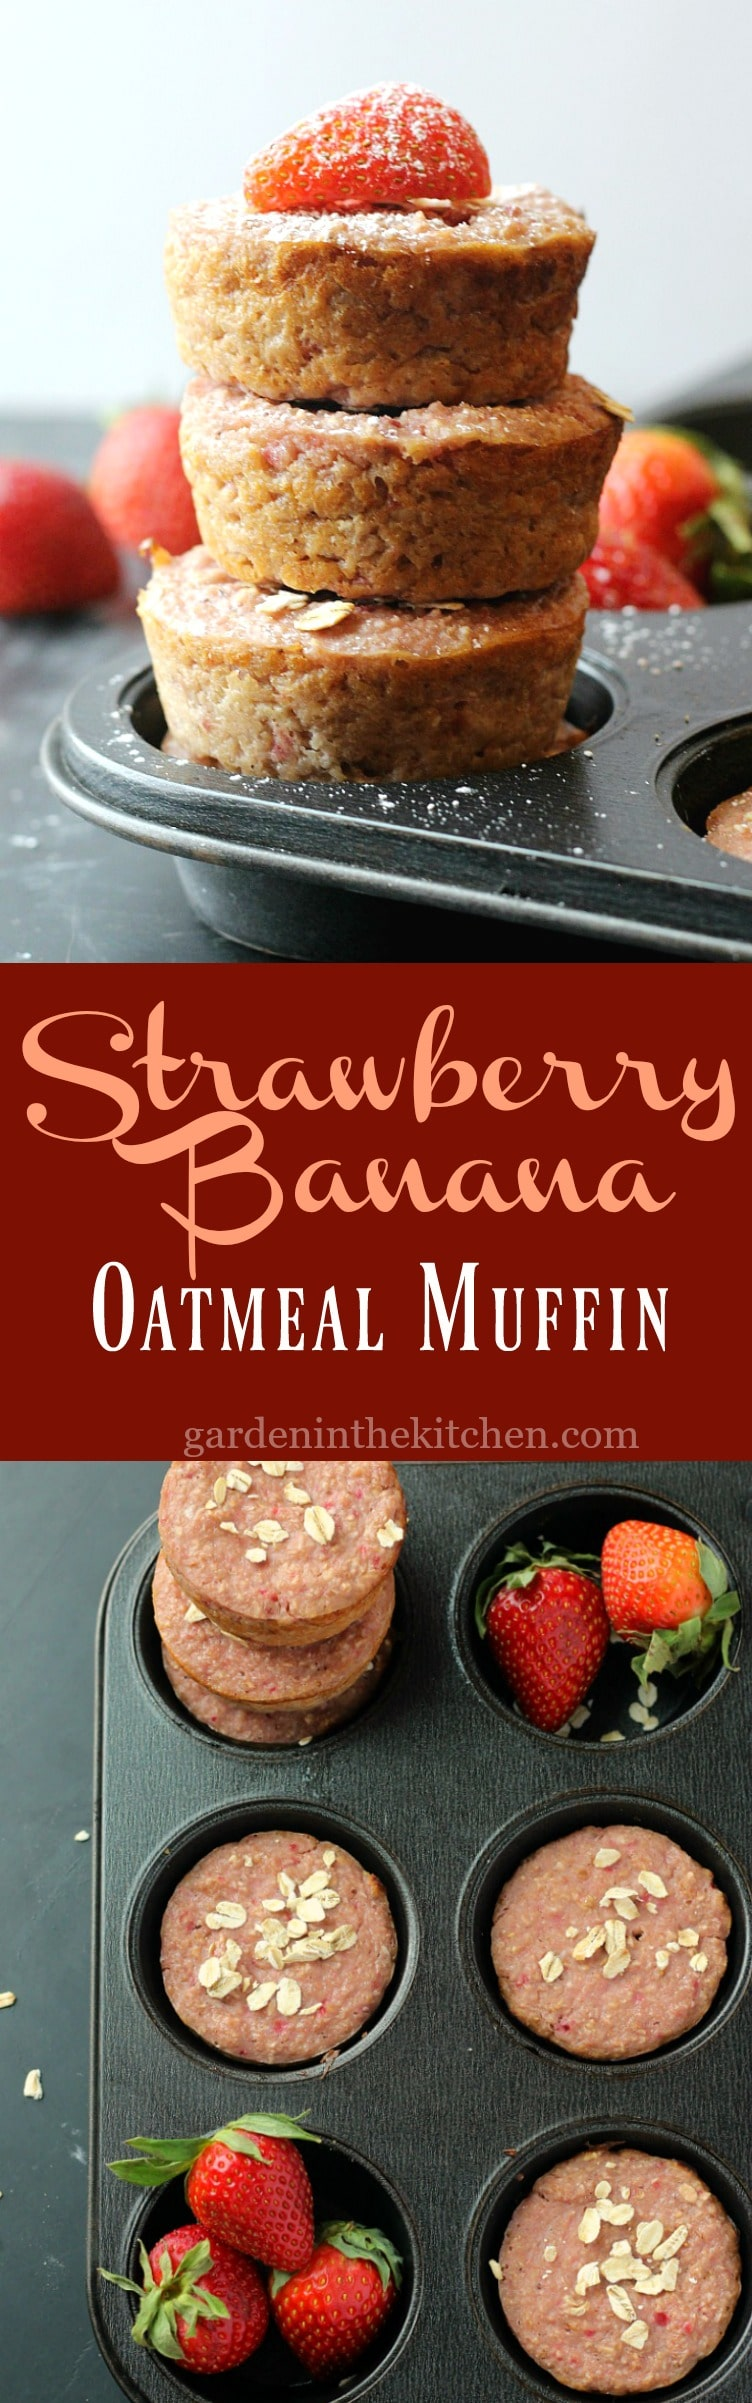 Healthy Strawberry Banana Oatmeal Muffins